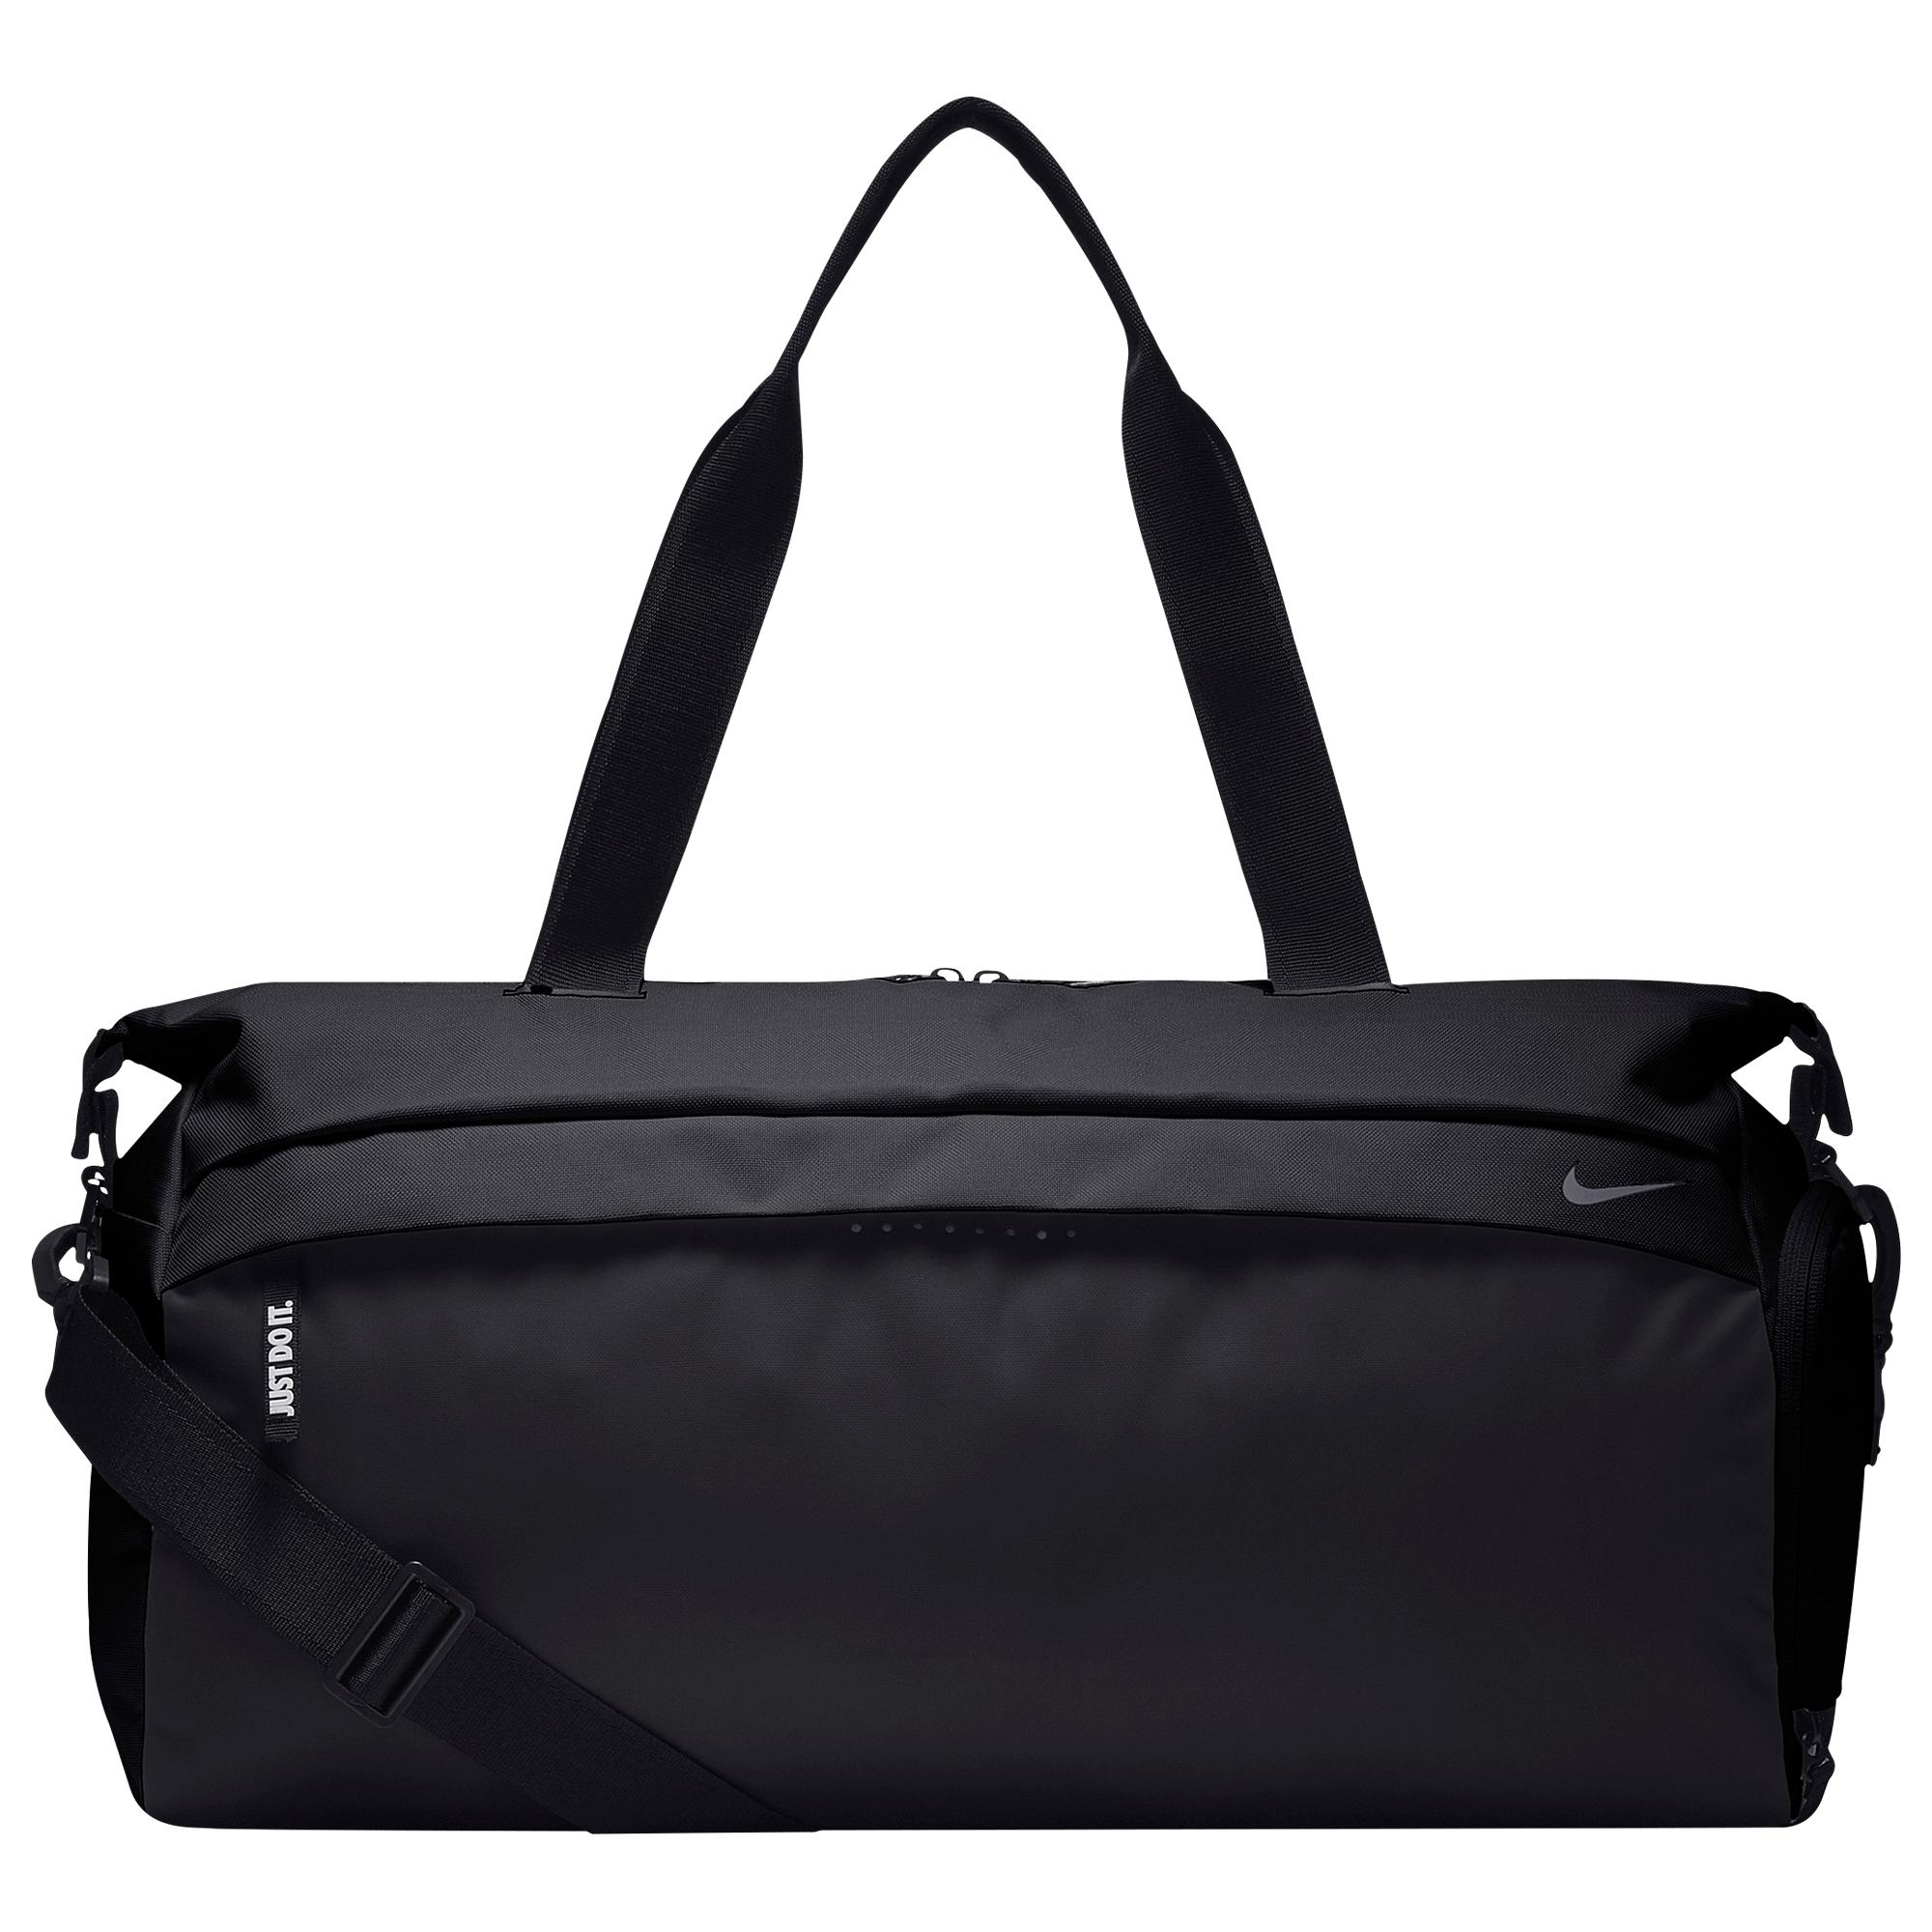 Lyst - Nike Radiate Duffel in Black for Men - Save 2% f76cb50f32315